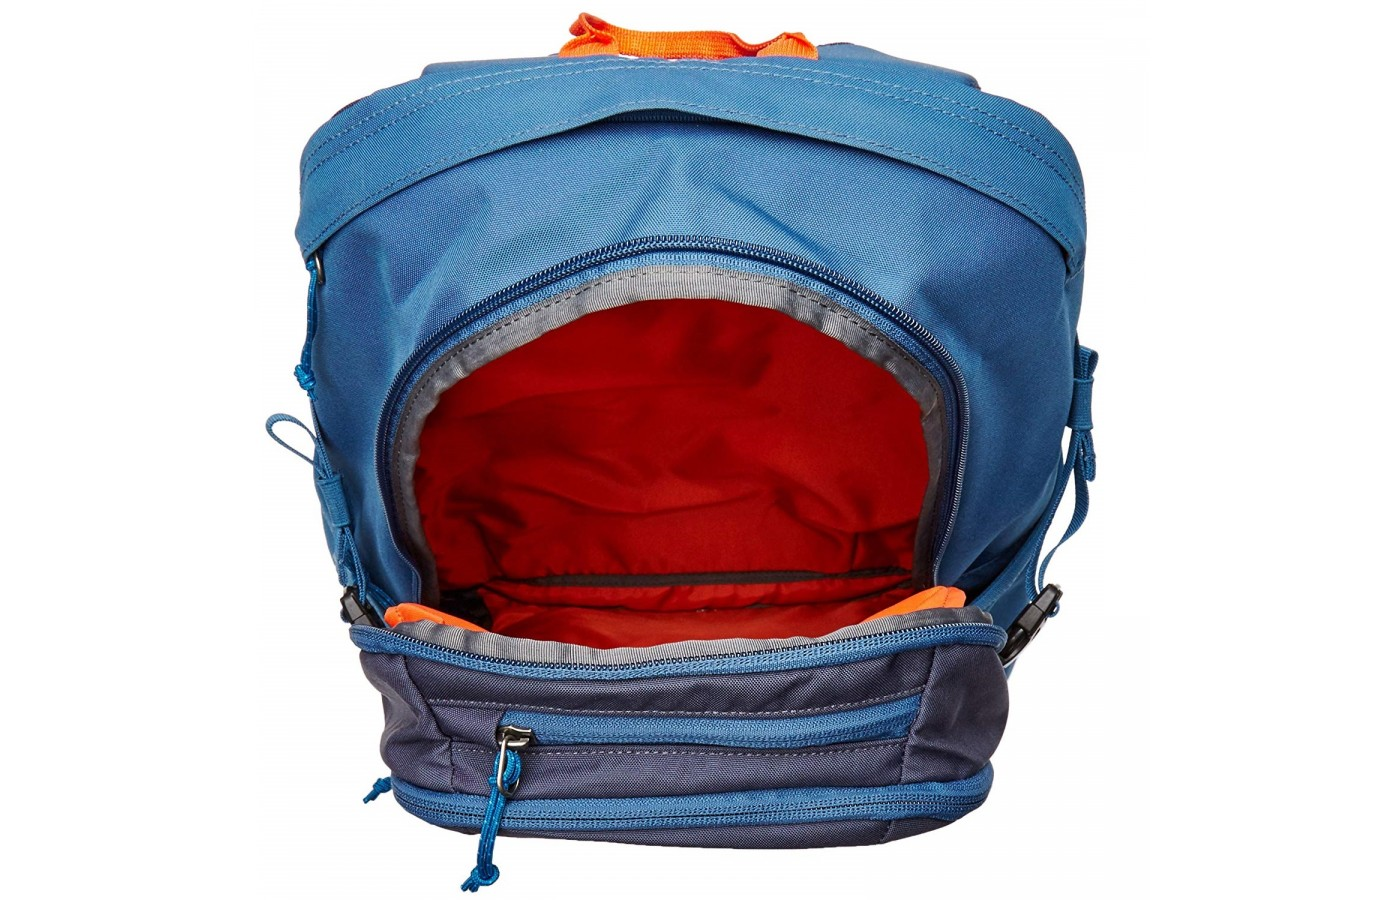 The Patagonia Refugio offers a lined tablet pocket for protection of your assets.